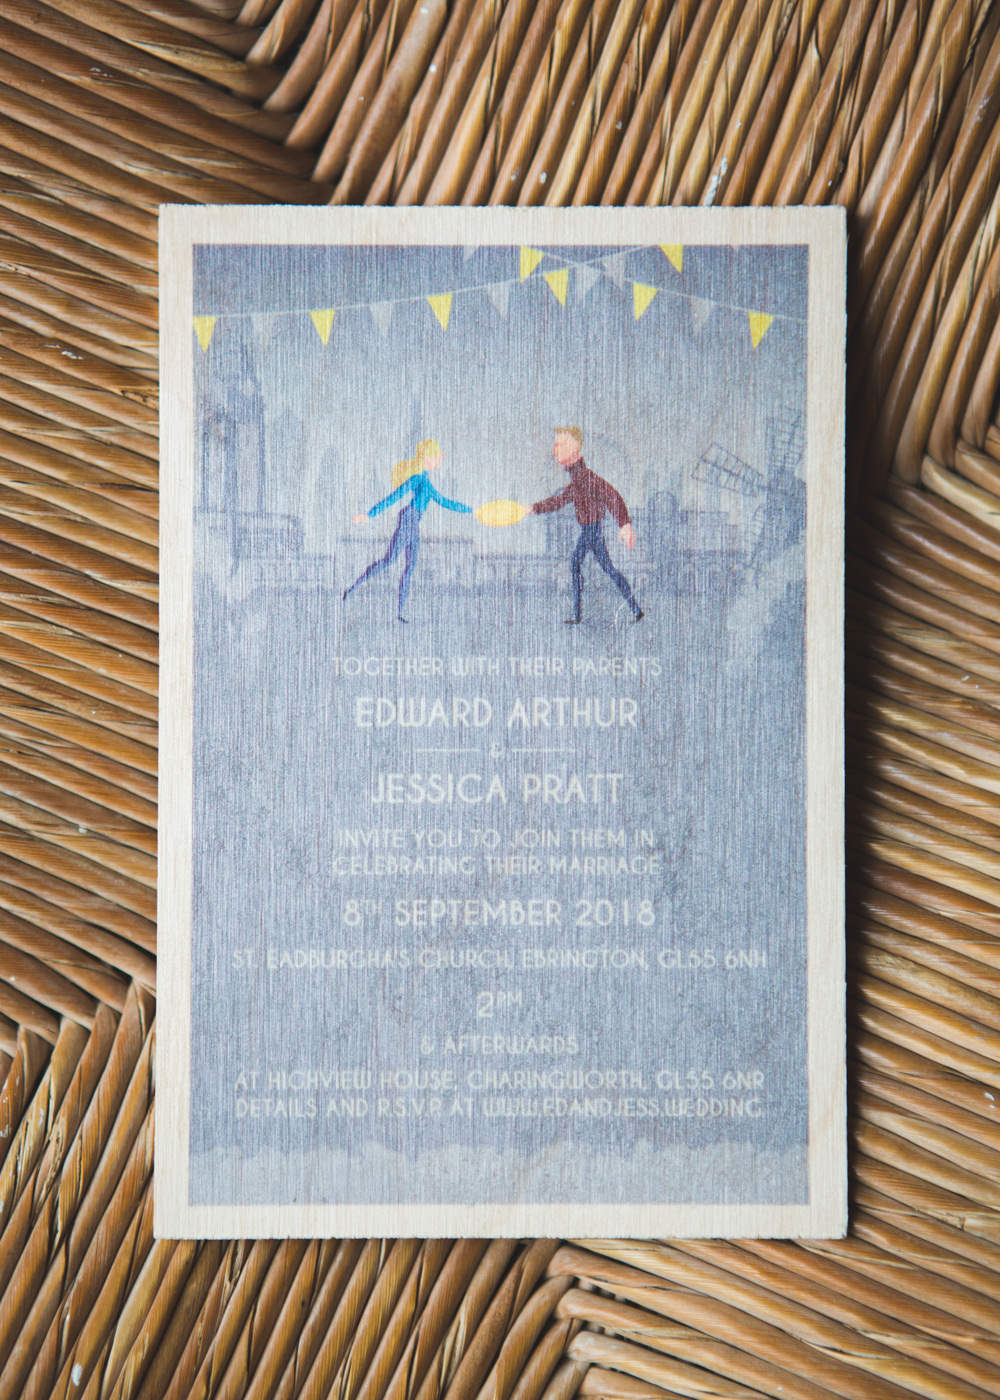 Stationery Invite Invitations Bunting Airbnb Wedding Pickavance Weddings